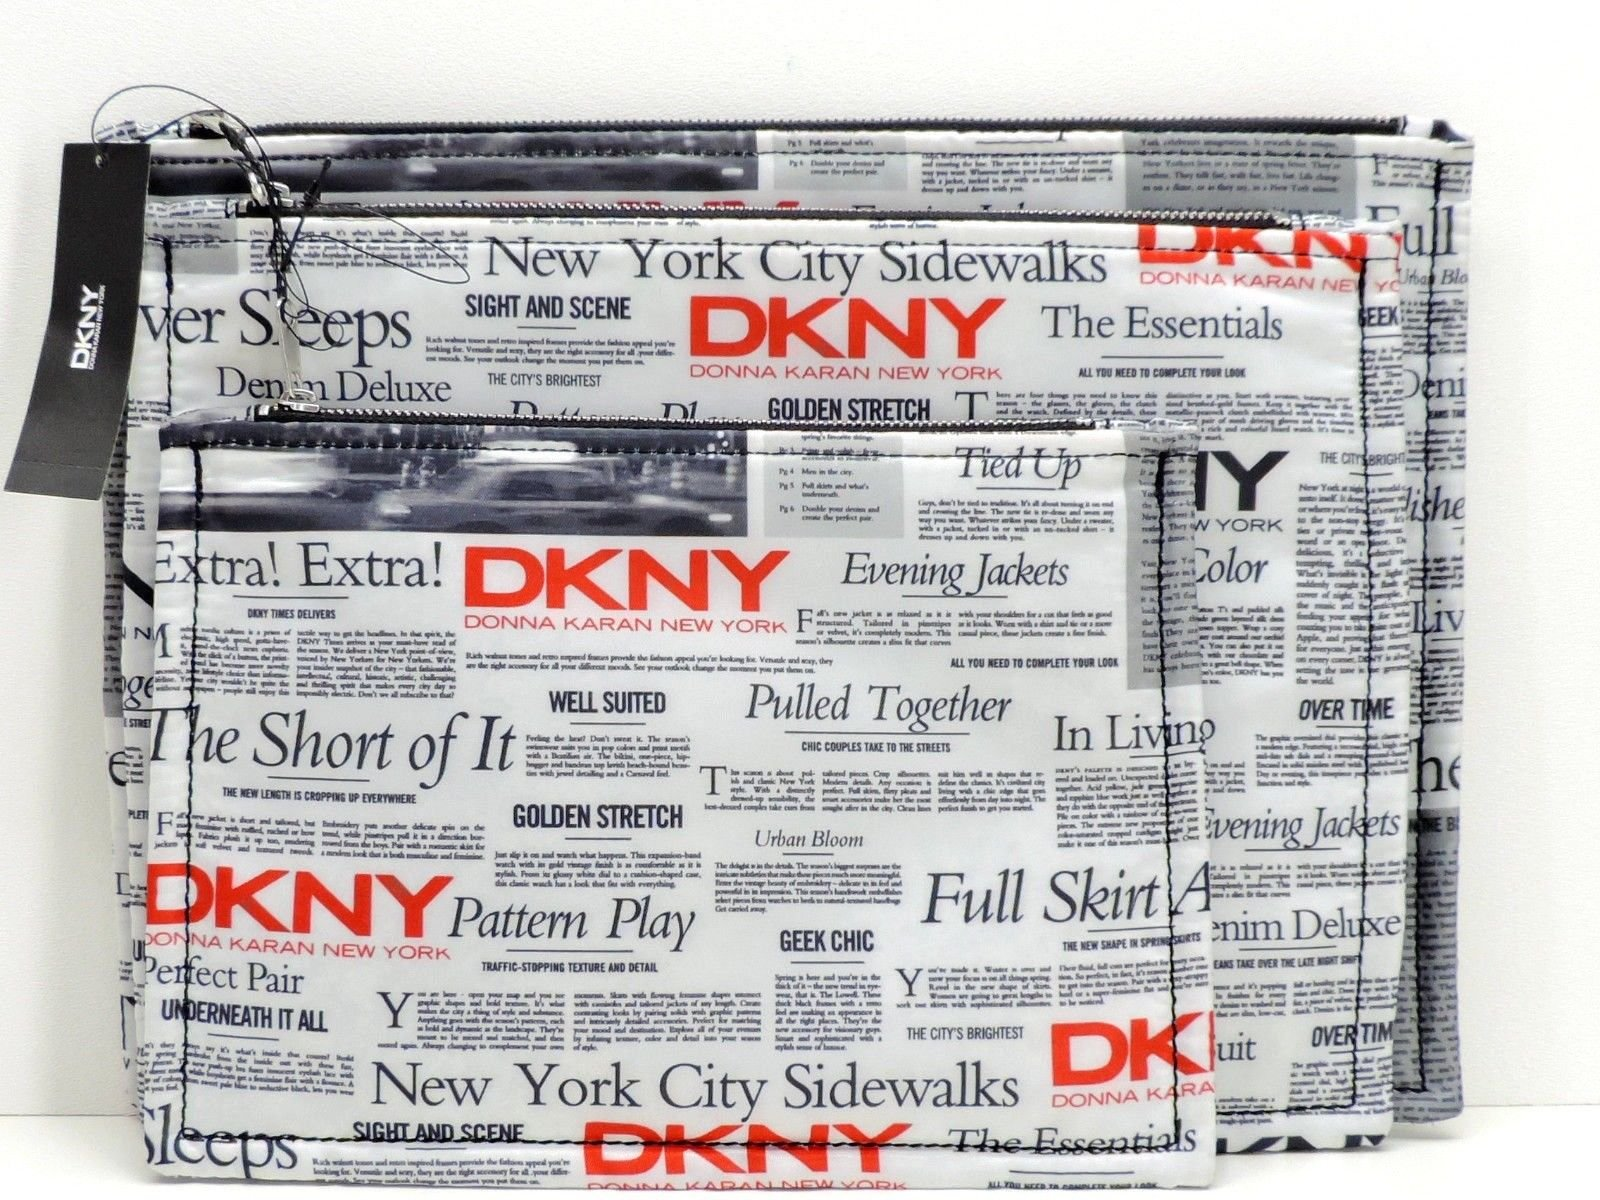 DKNY Black White Red Newspaper Printed 3-Piece Clutch Bag Set Cosmetic Makeup